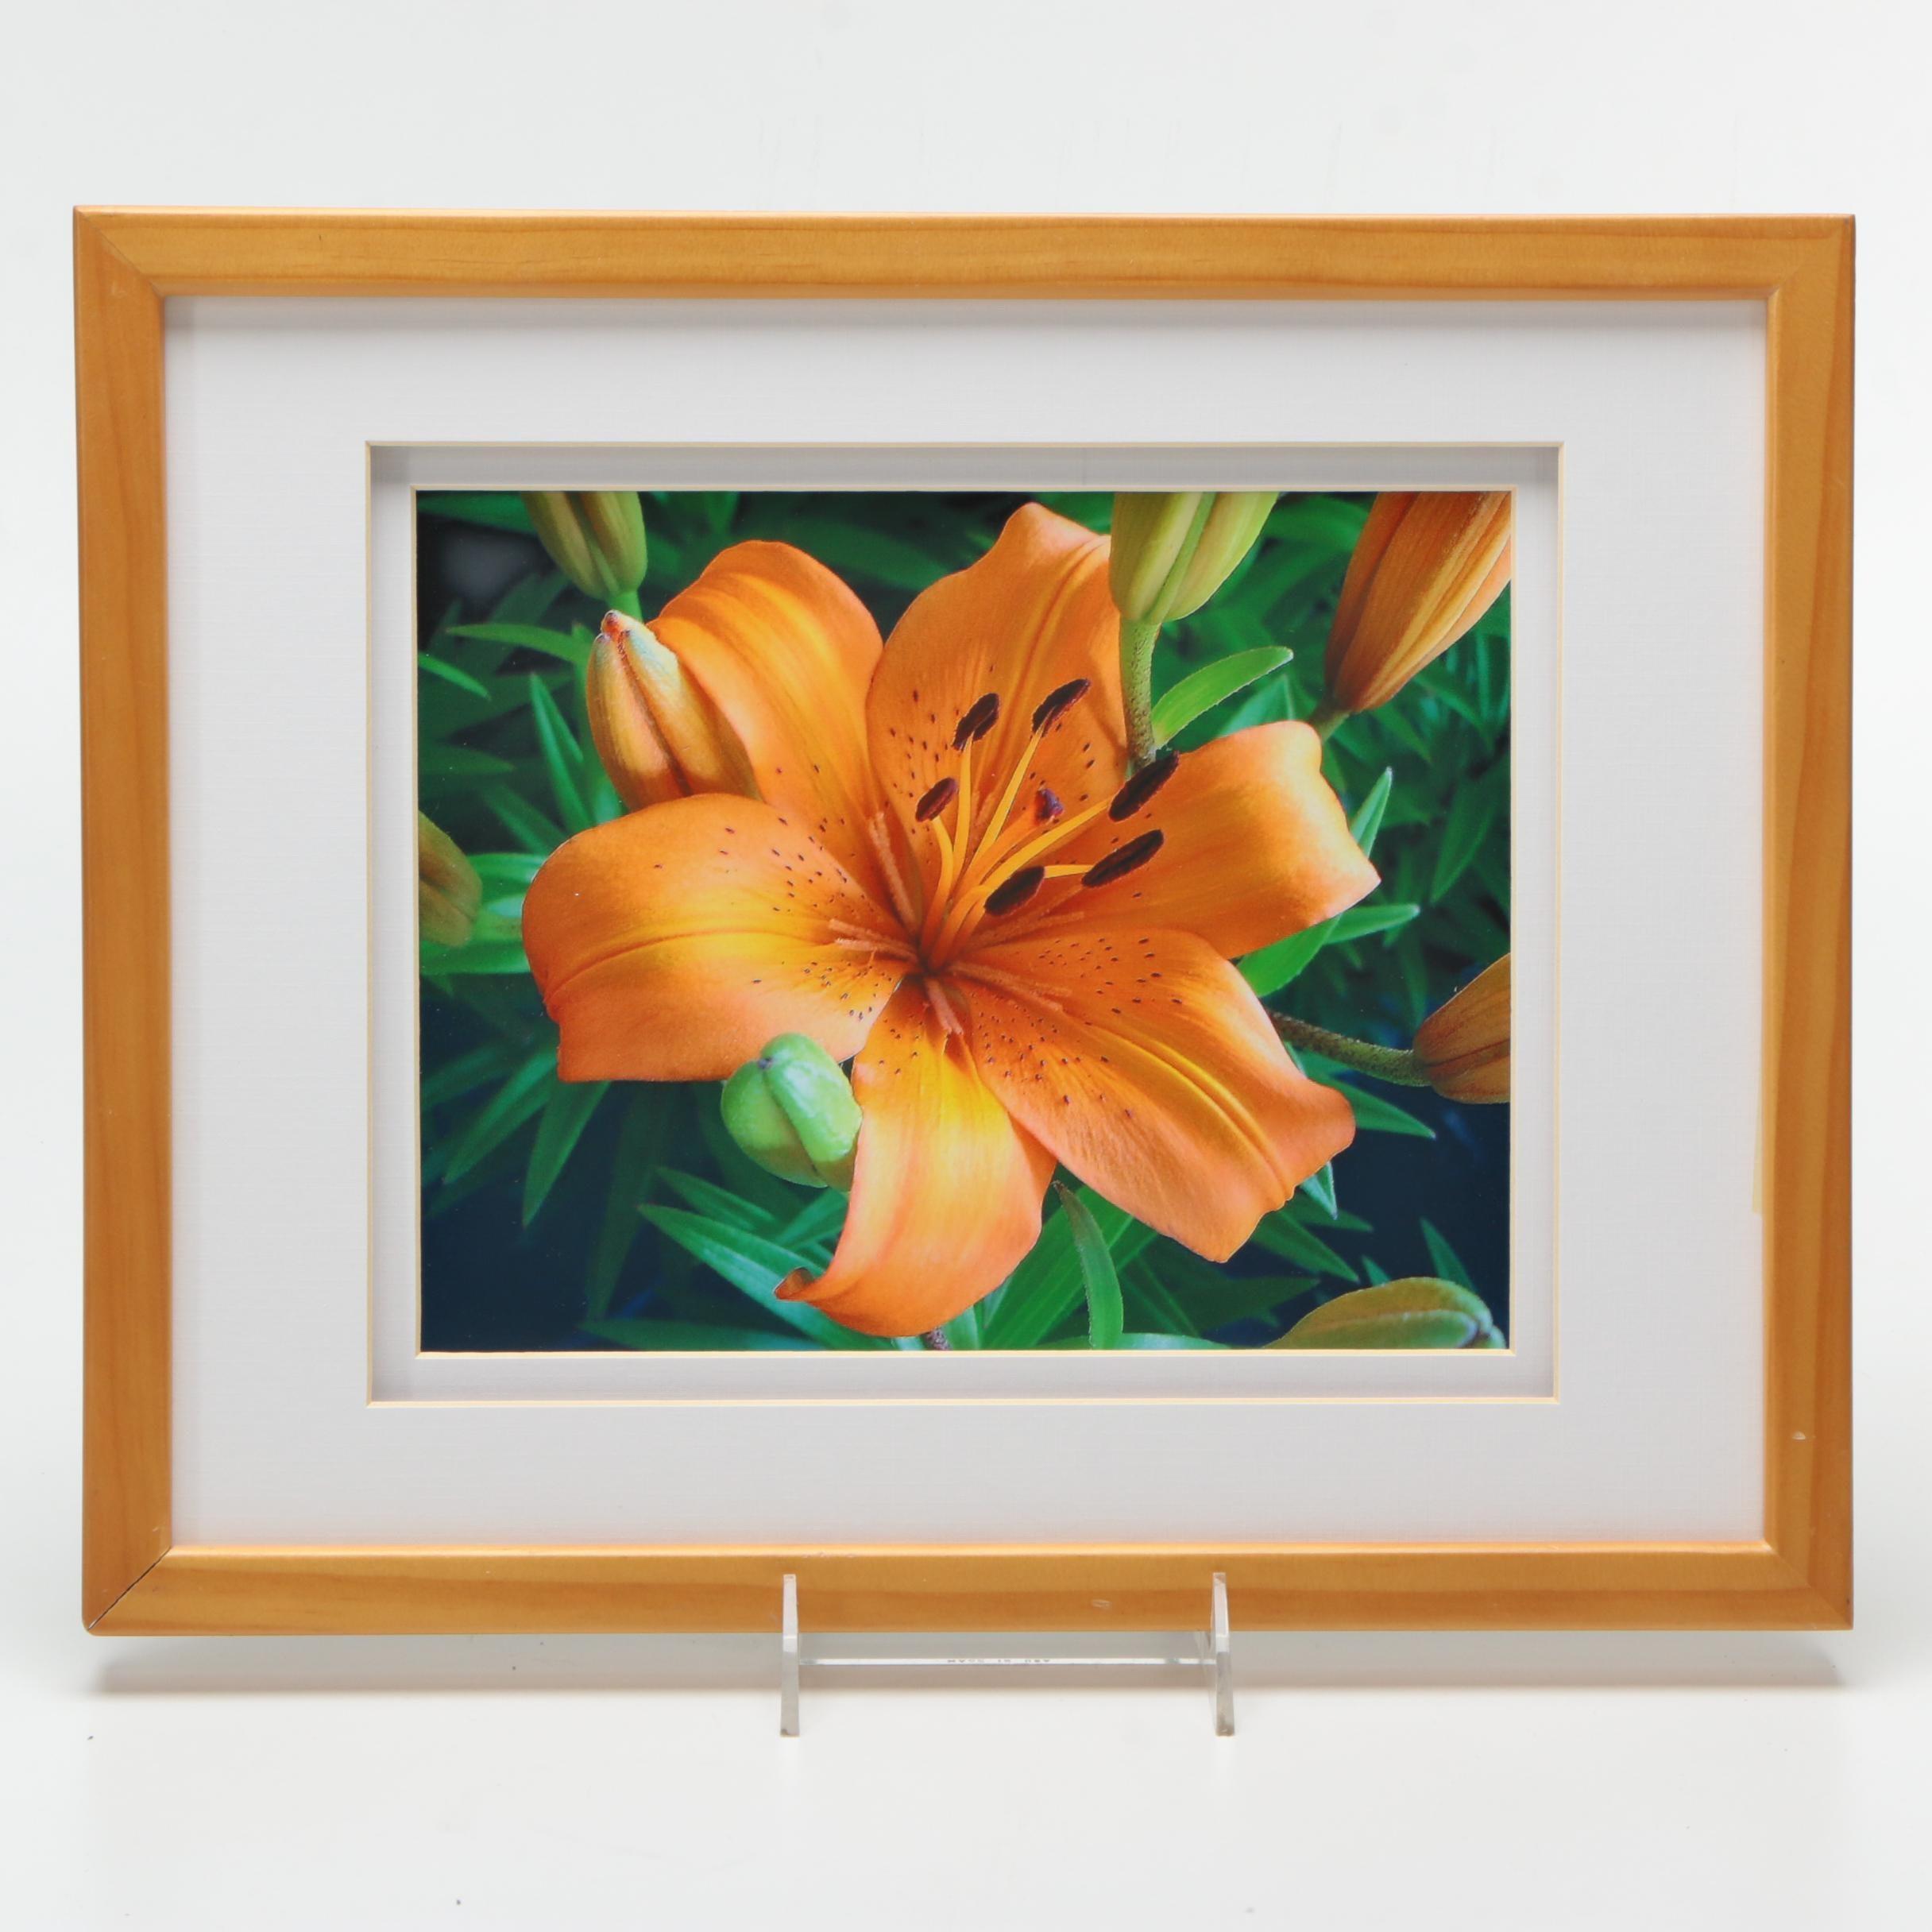 C. Jerry Abraham Giclee Print on Paper of a Lily